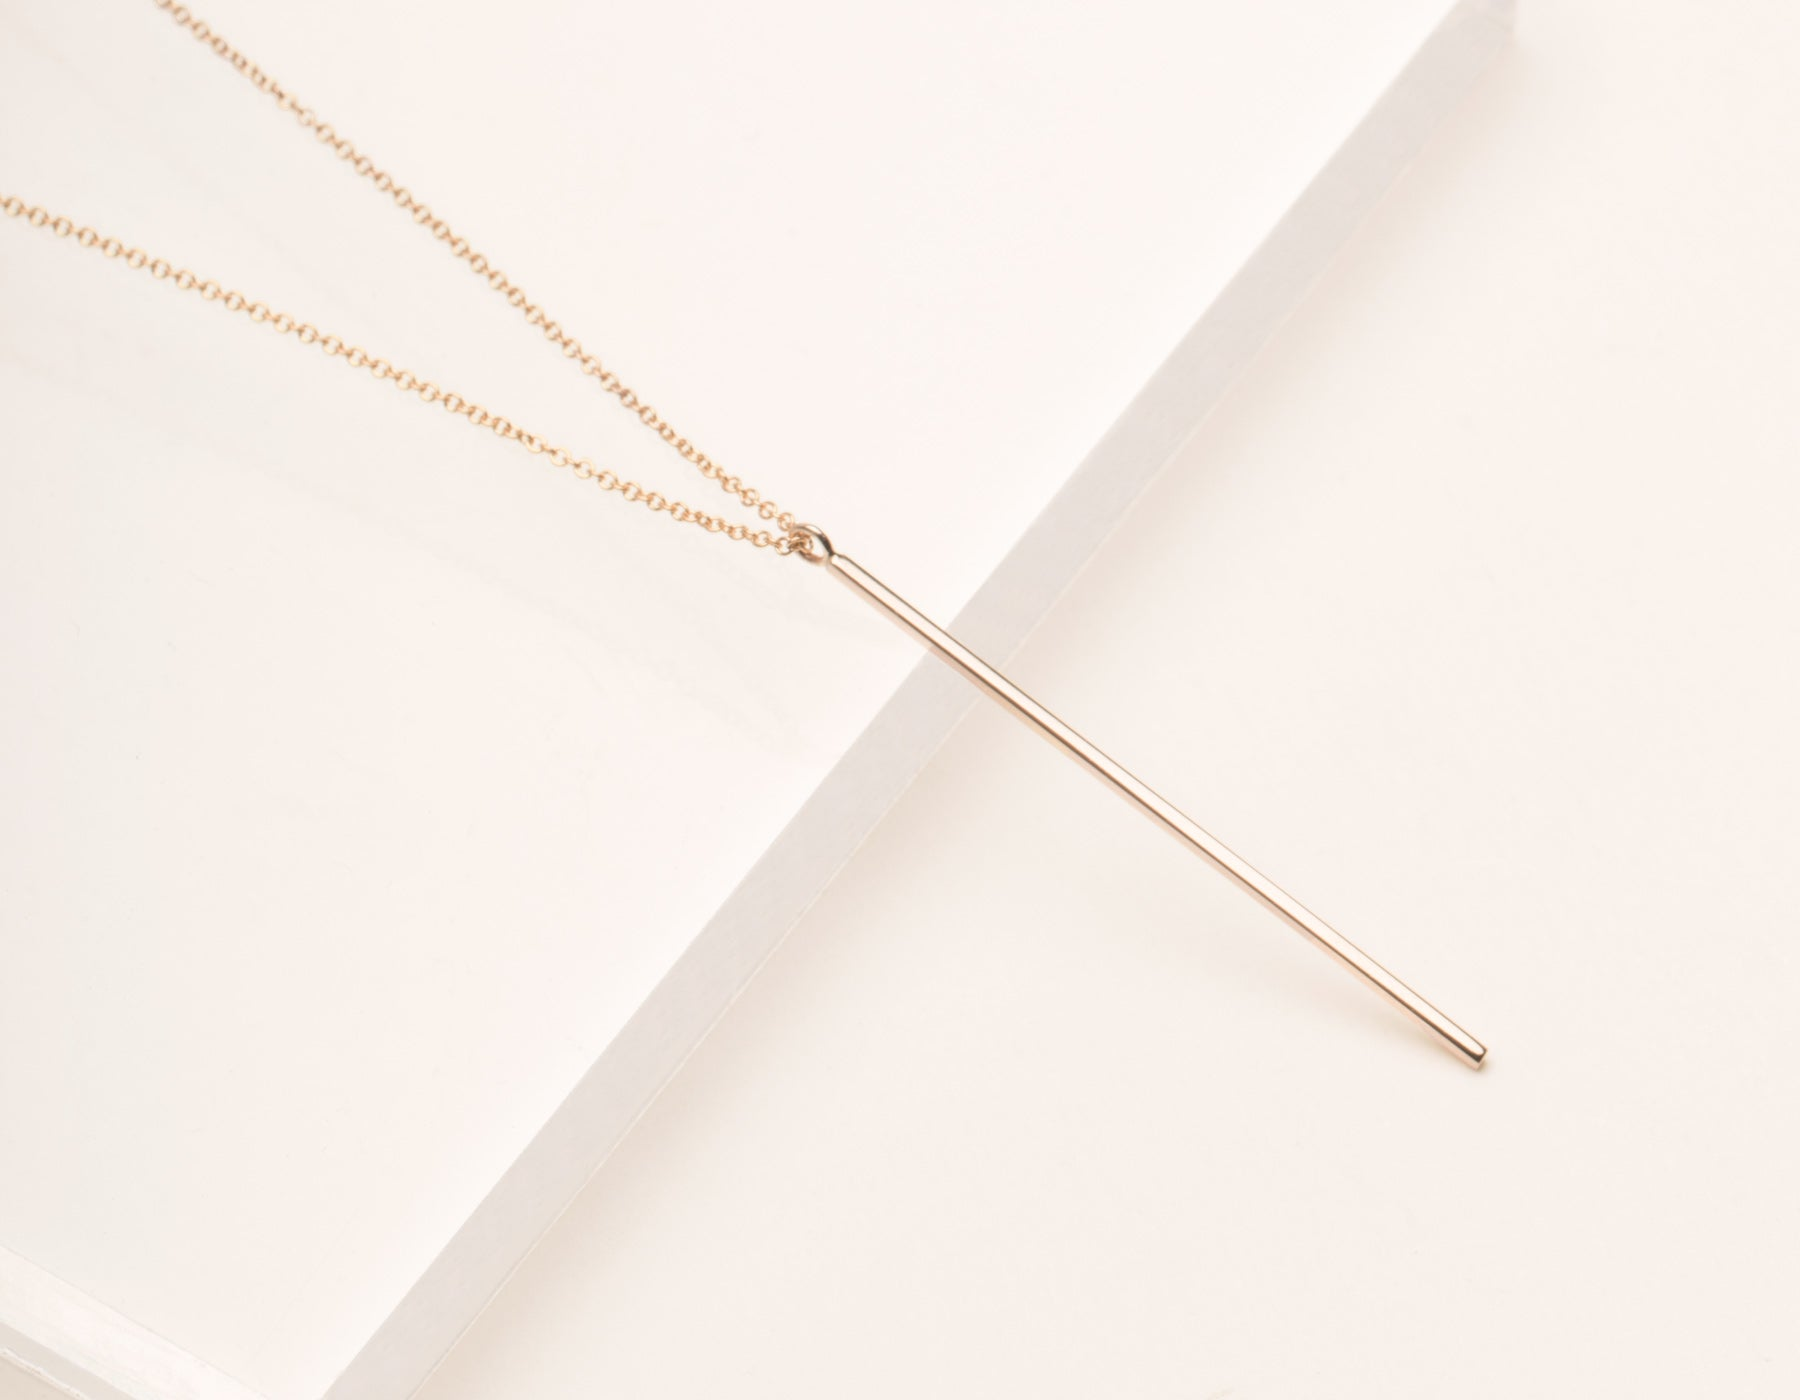 necklace rsp vertical bar personalised ibb pendant yellow pdp johnlewis at main initial buyibb online gold